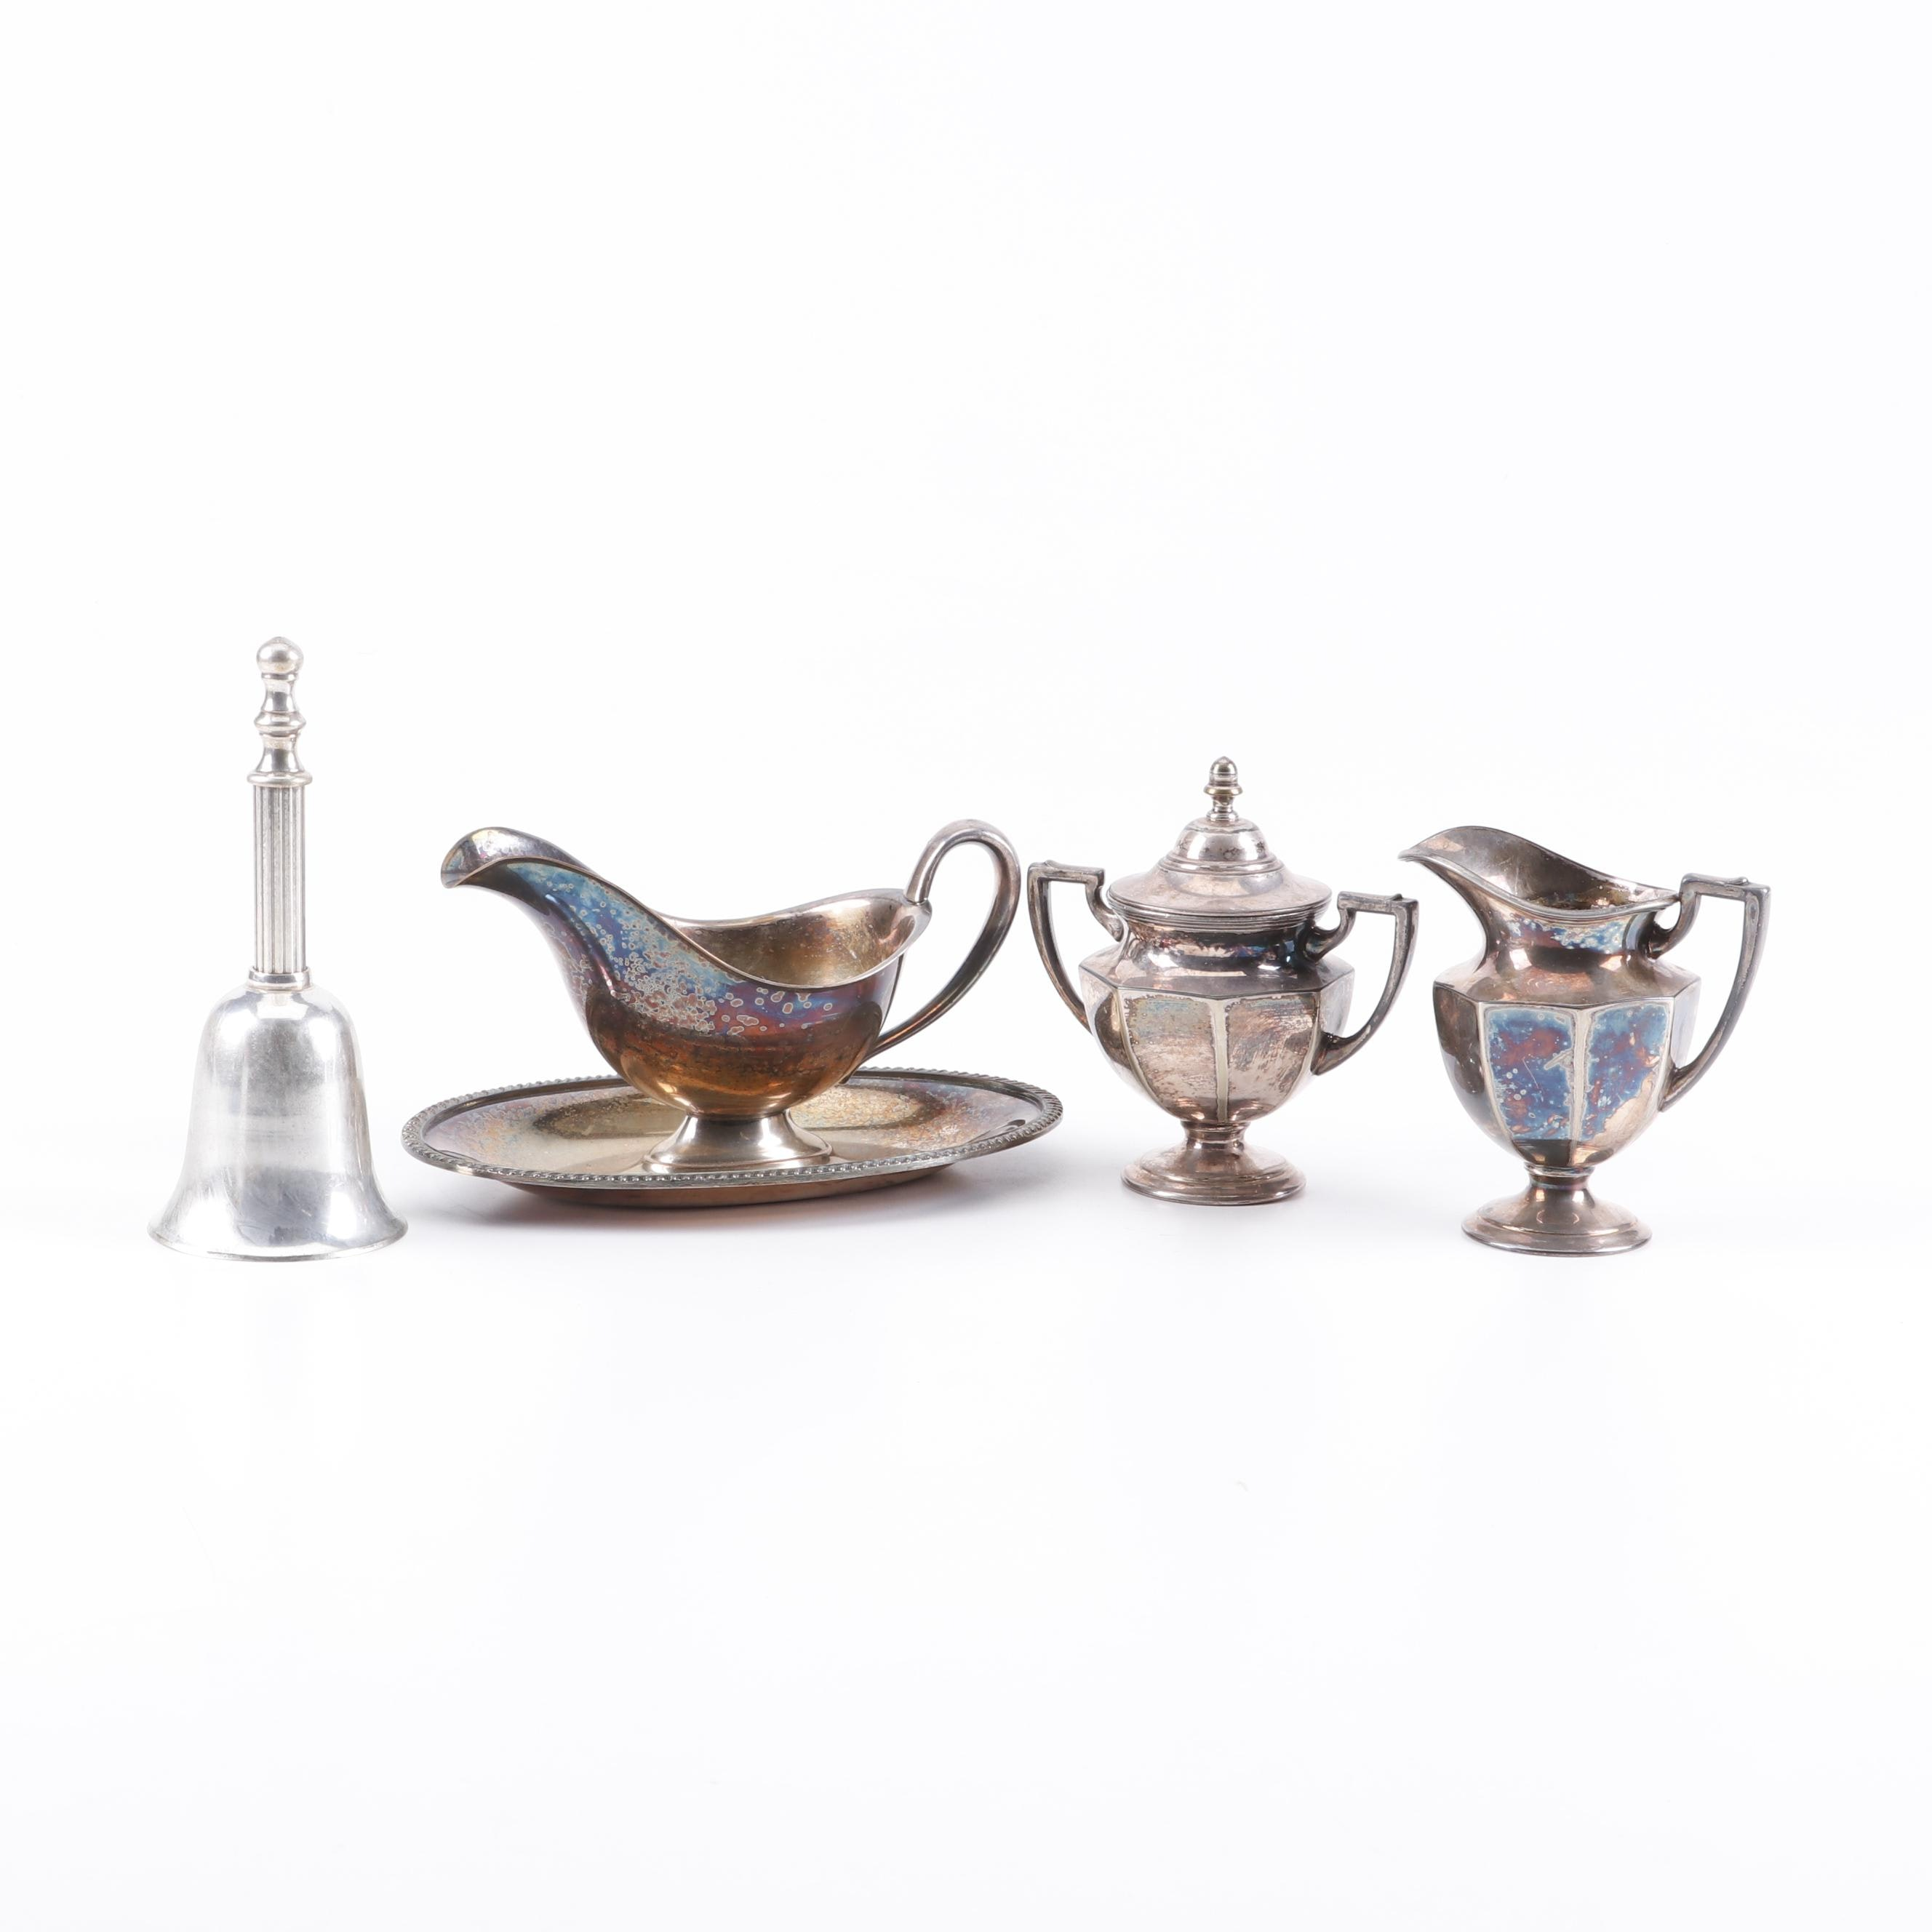 Silver Plate Tableware and Dinner Bell